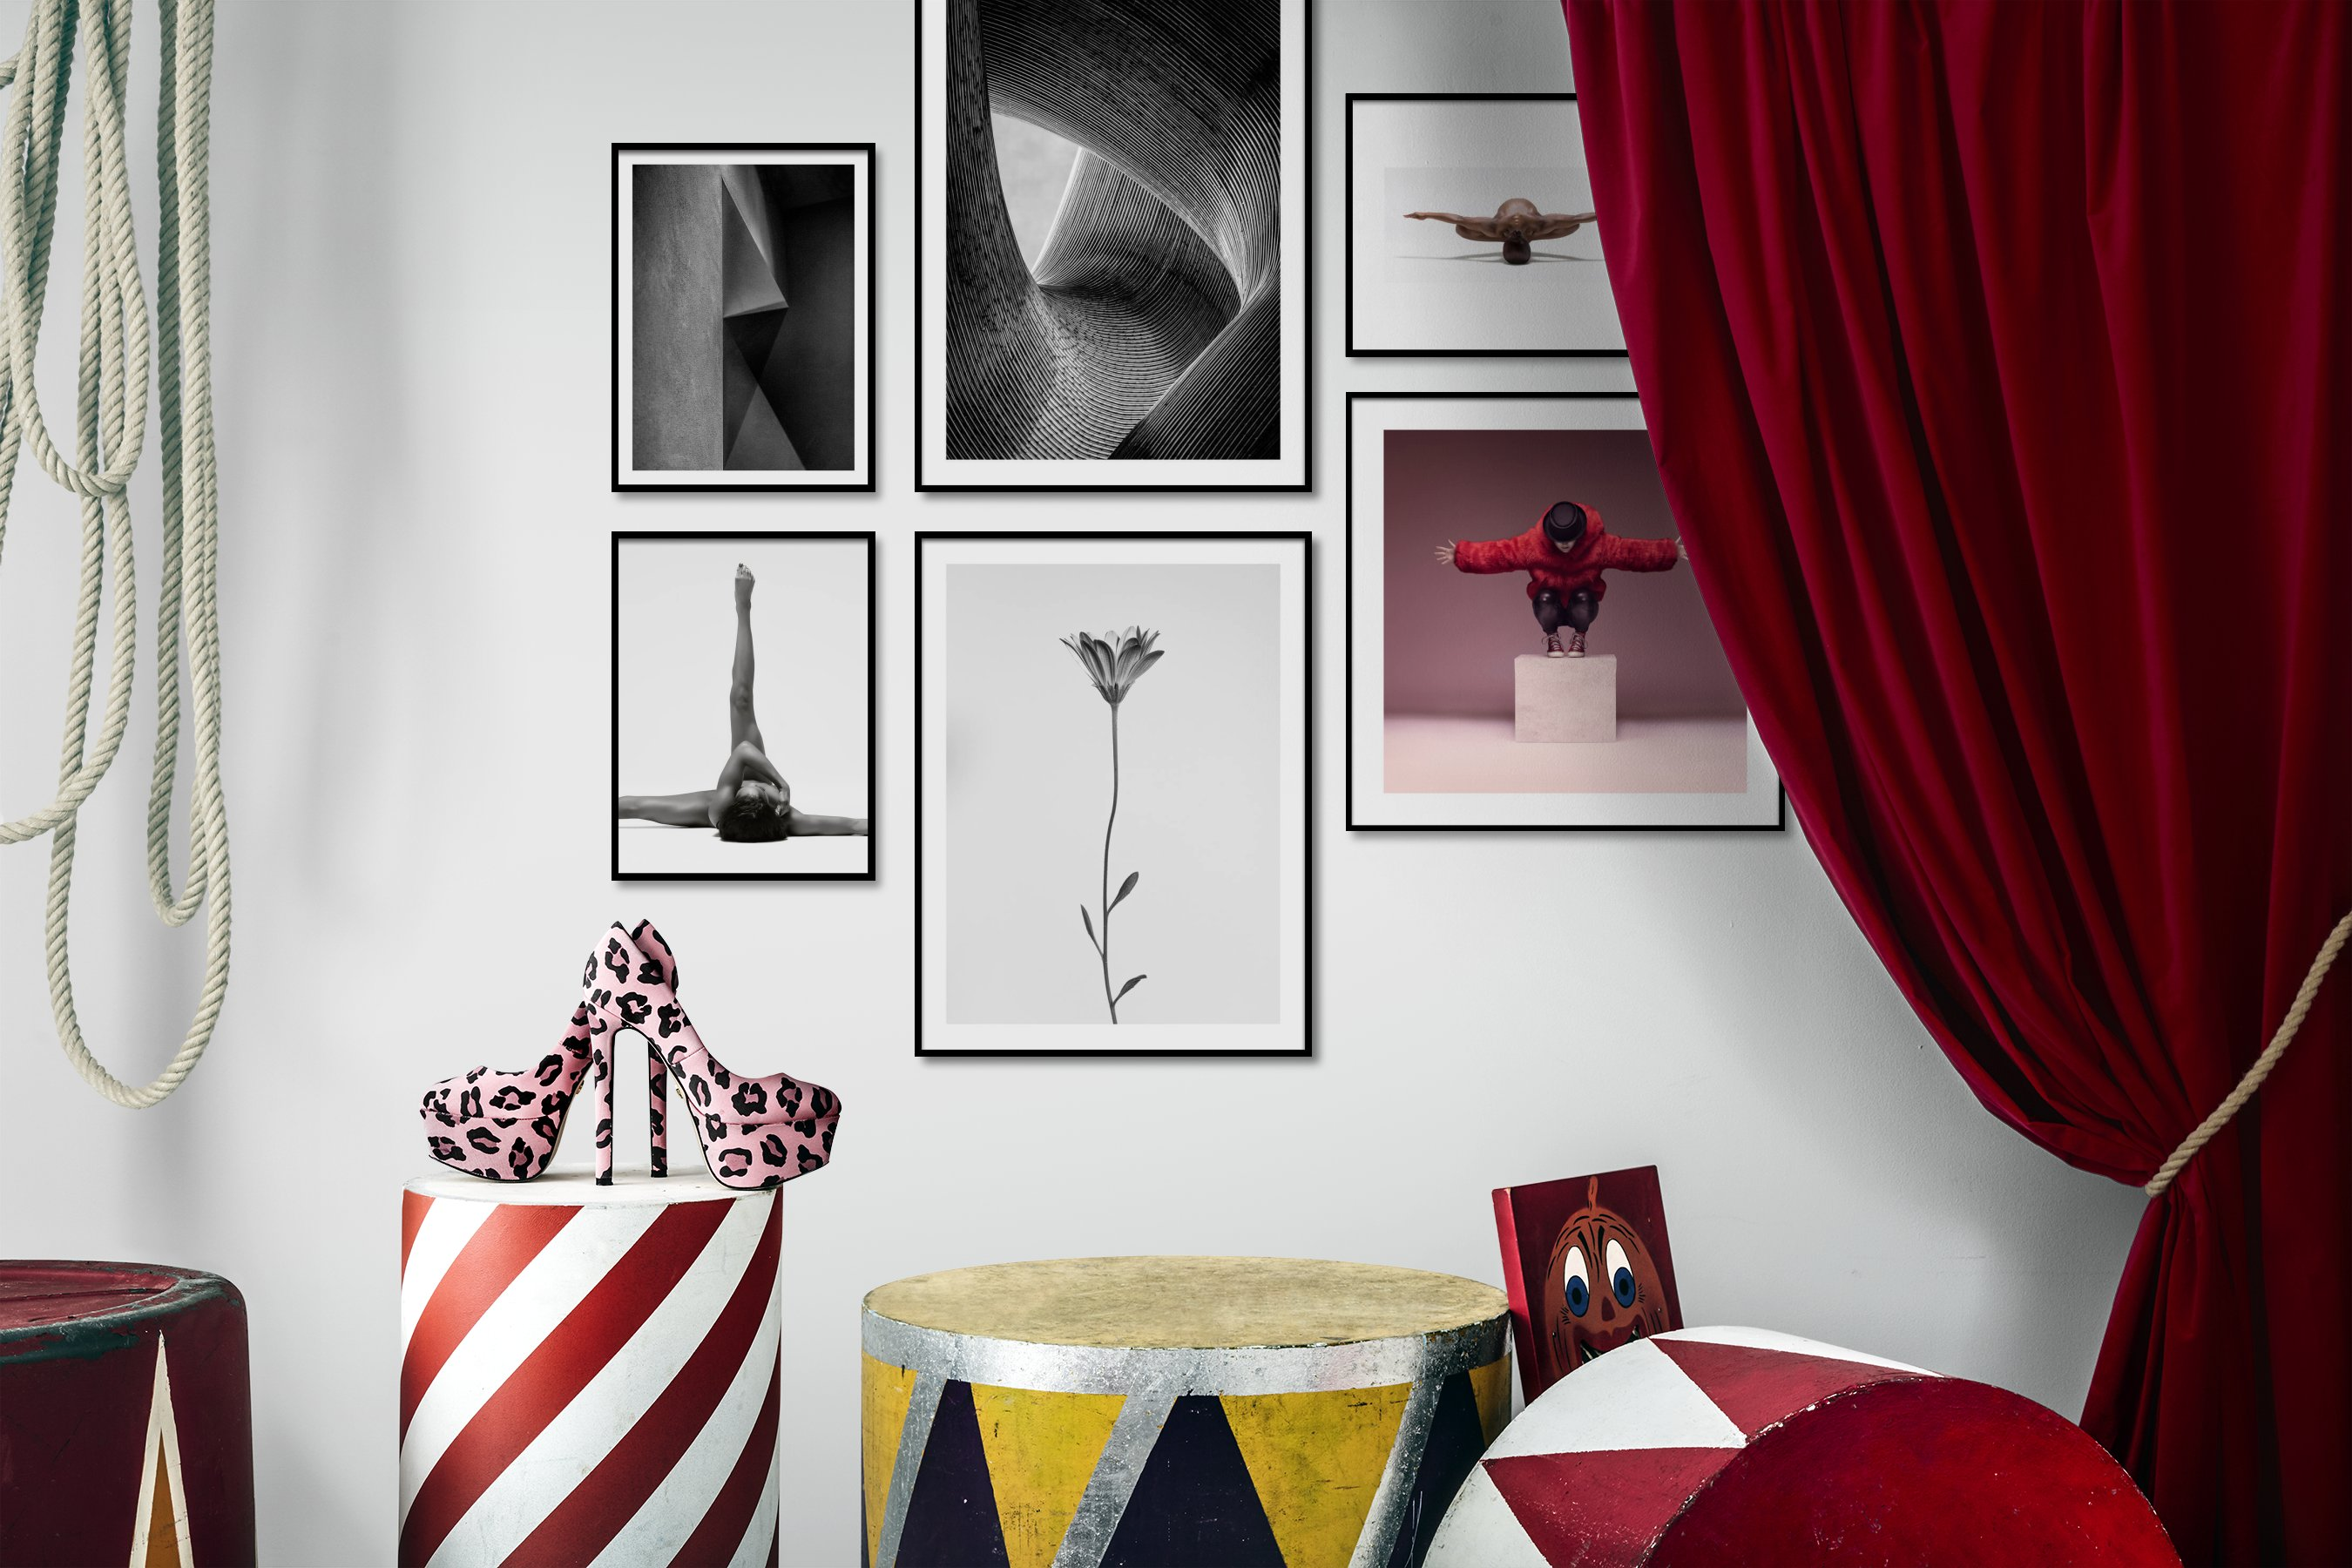 Gallery wall idea with six framed pictures arranged on a wall depicting Black & White, For the Minimalist, For the Moderate, Fashion & Beauty, Bright Tones, Mindfulness, and Flowers & Plants